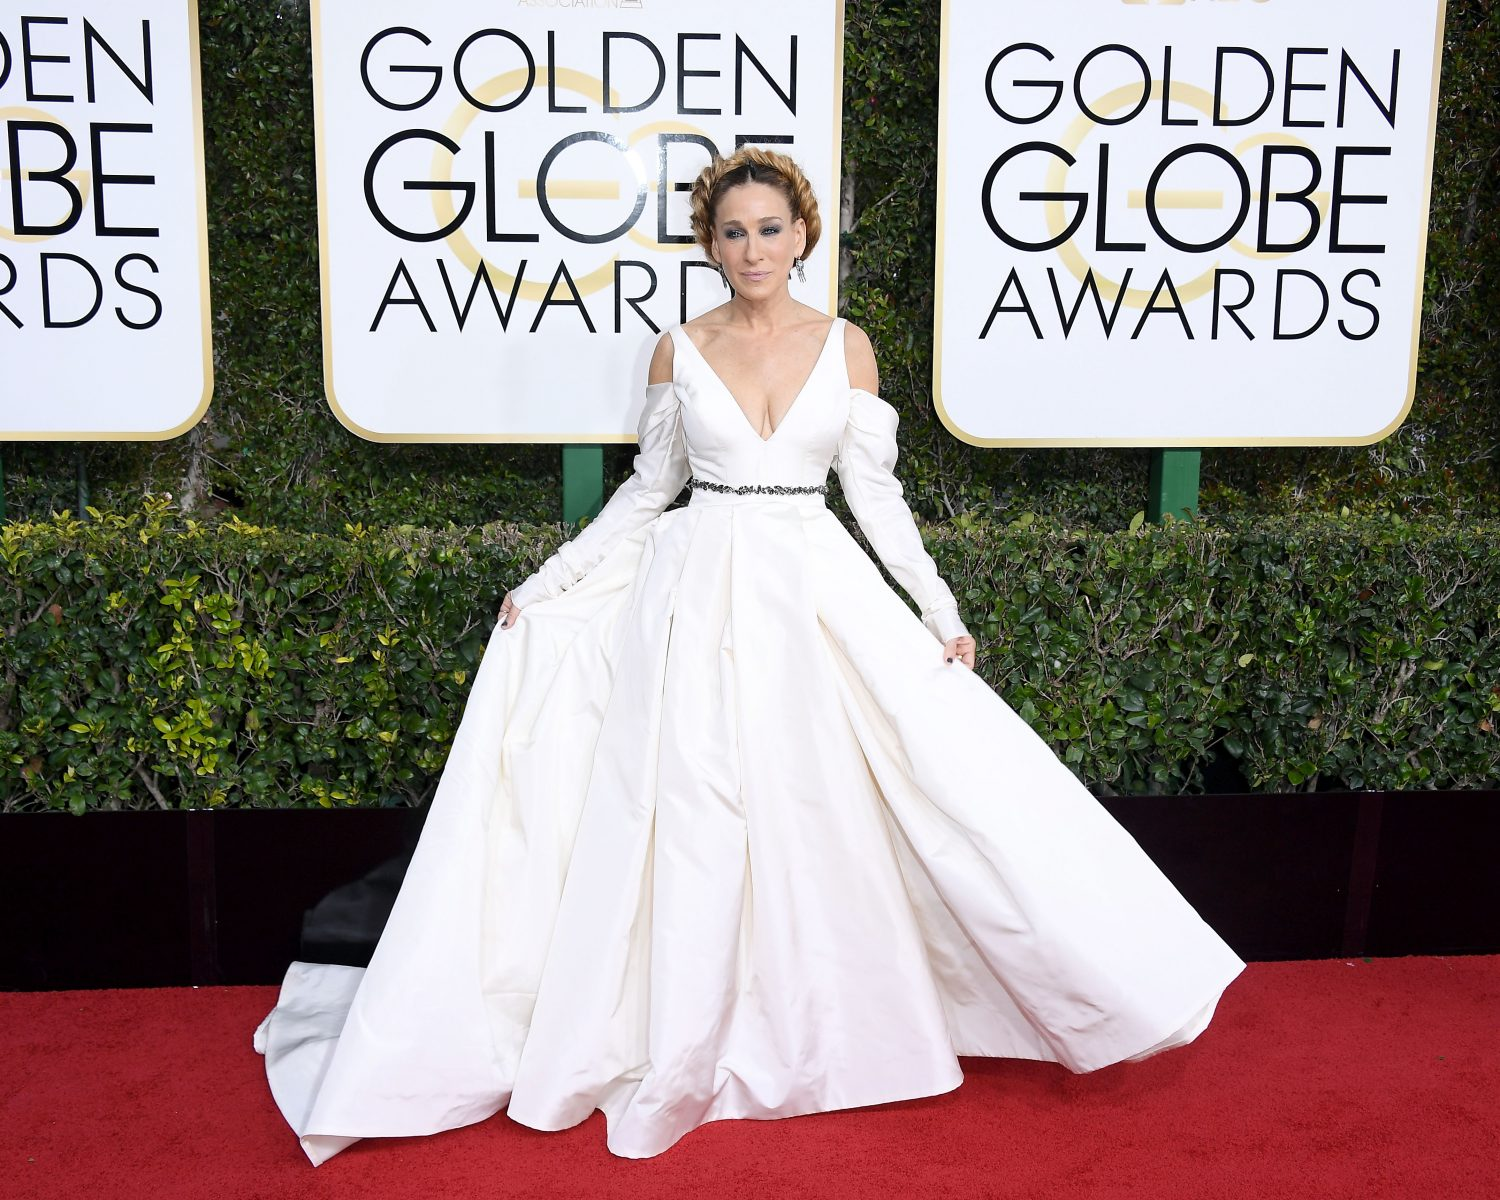 Sarah Jessica Parker Wears Wedding Dress to Golden Globes 2017